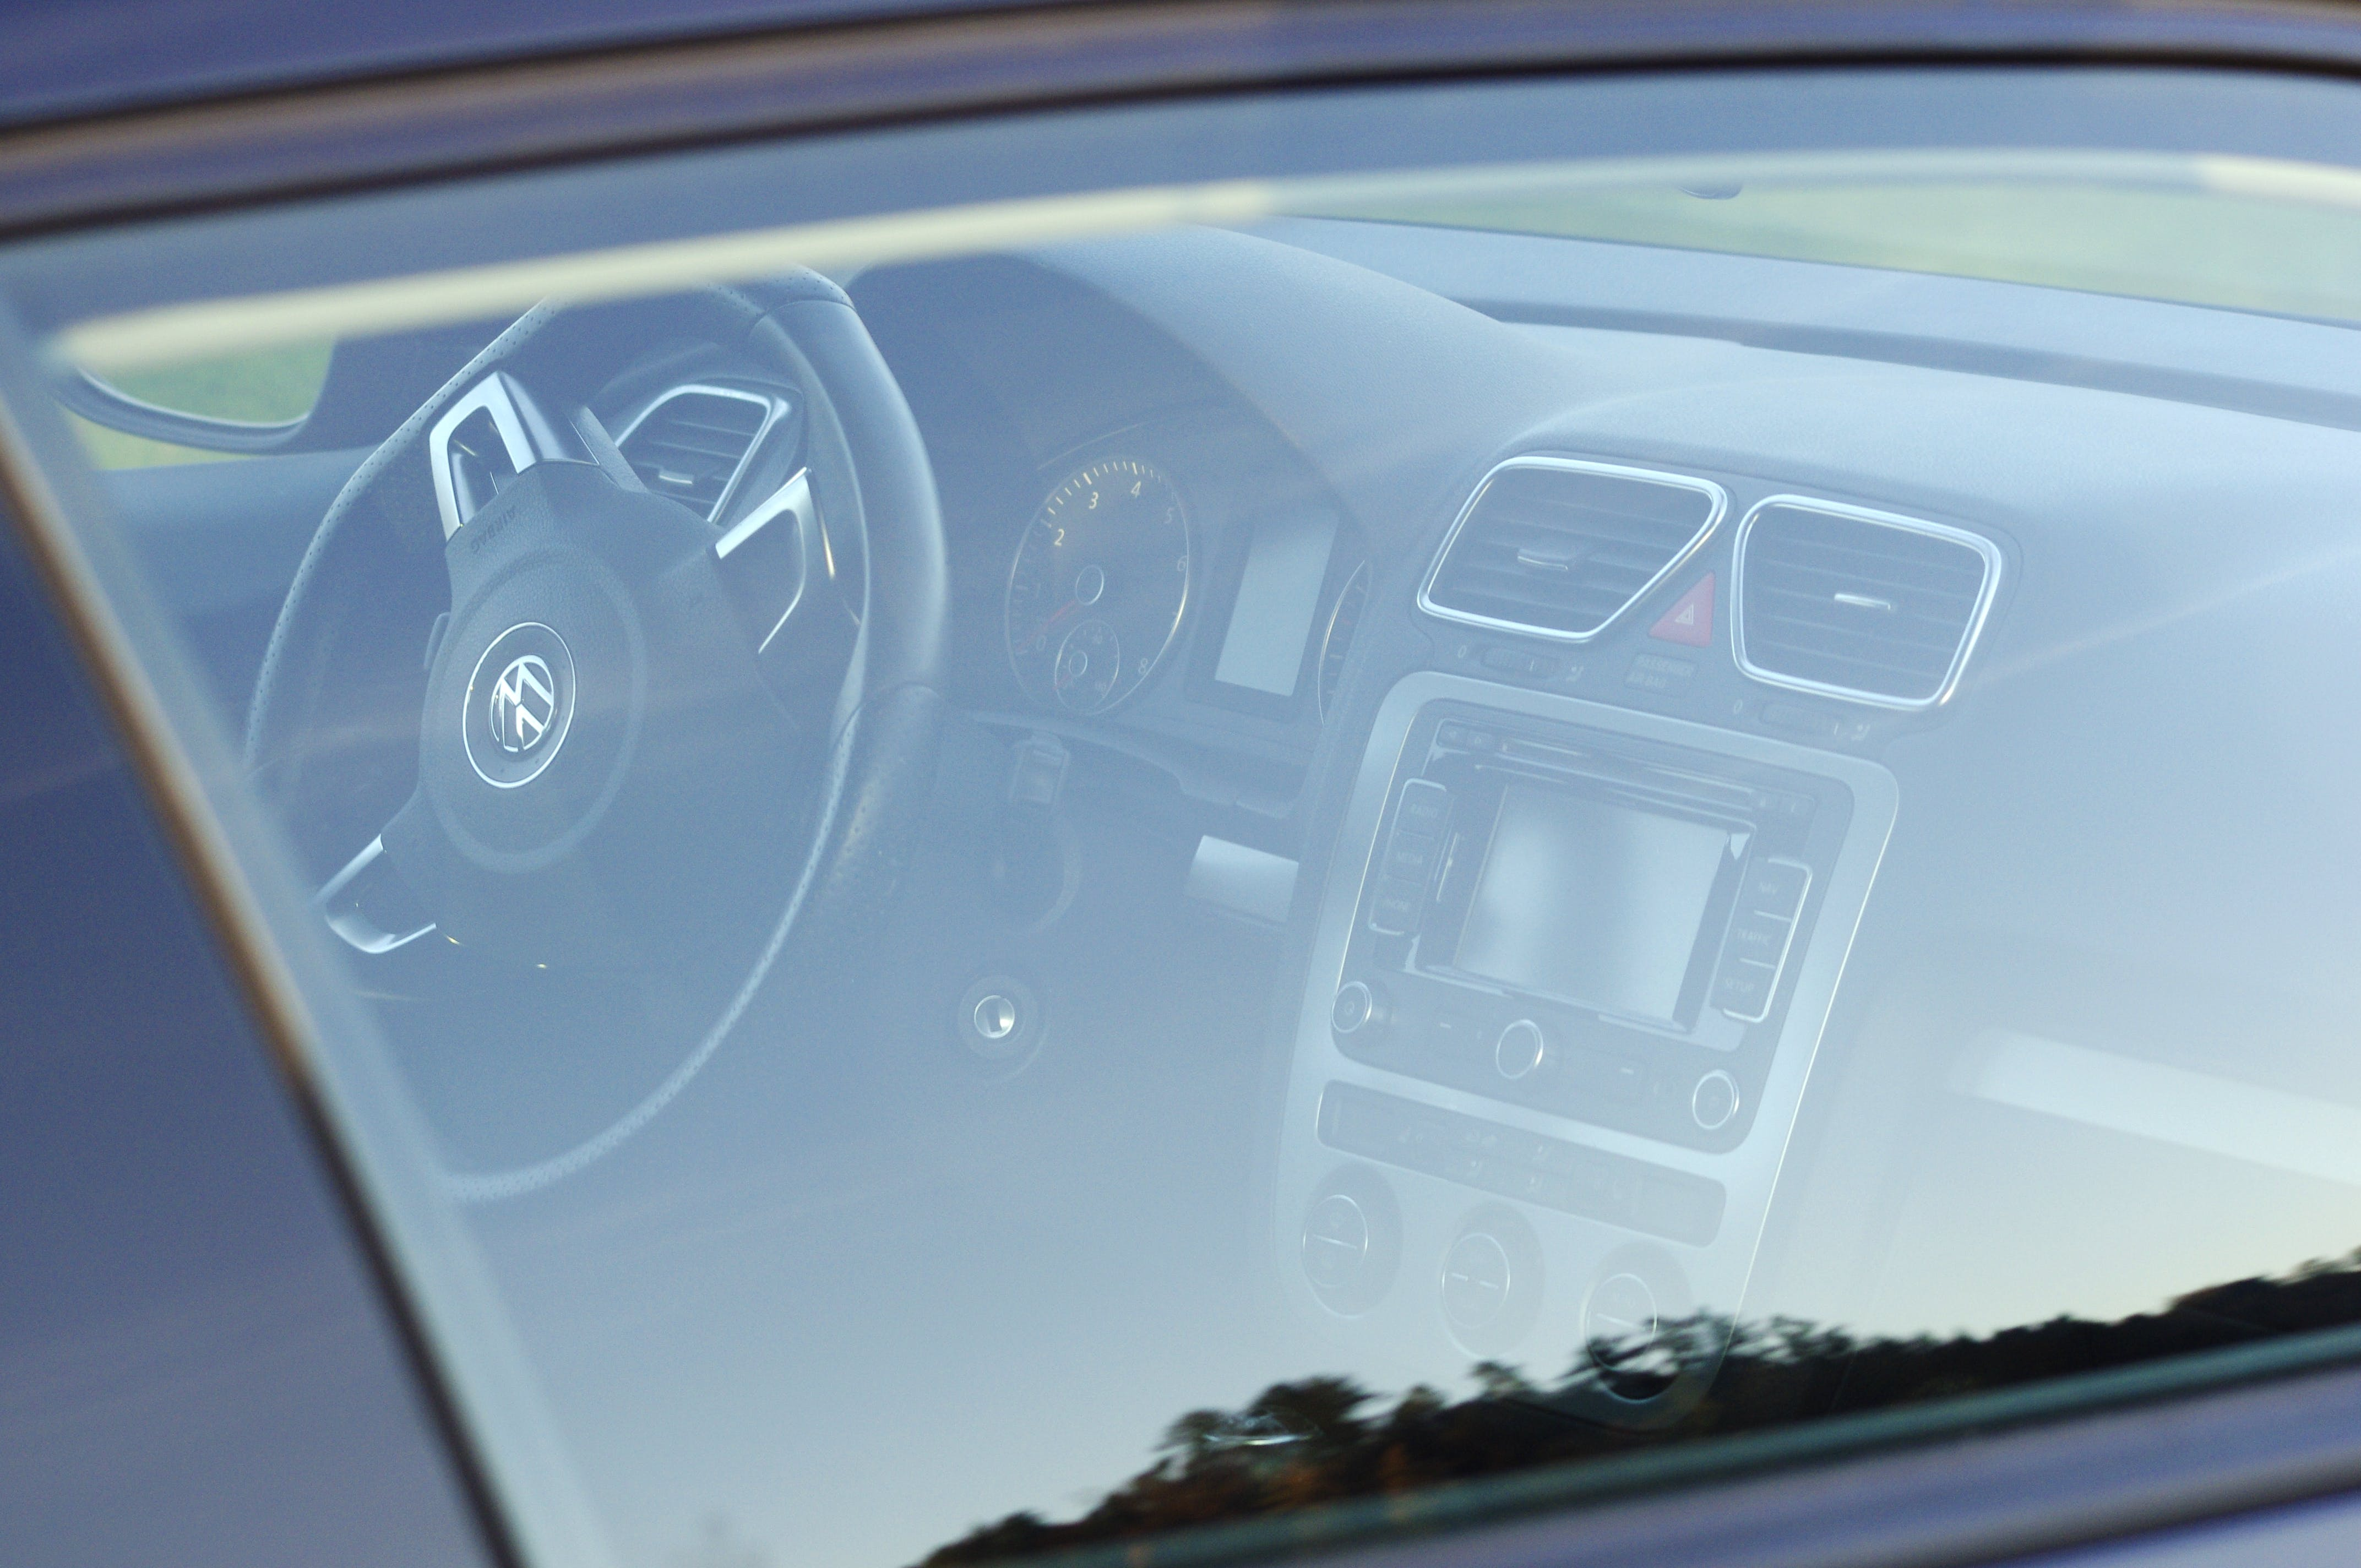 VW Scirocco 3 1.4 Sport Coupe Gengenbach mit CD-Player